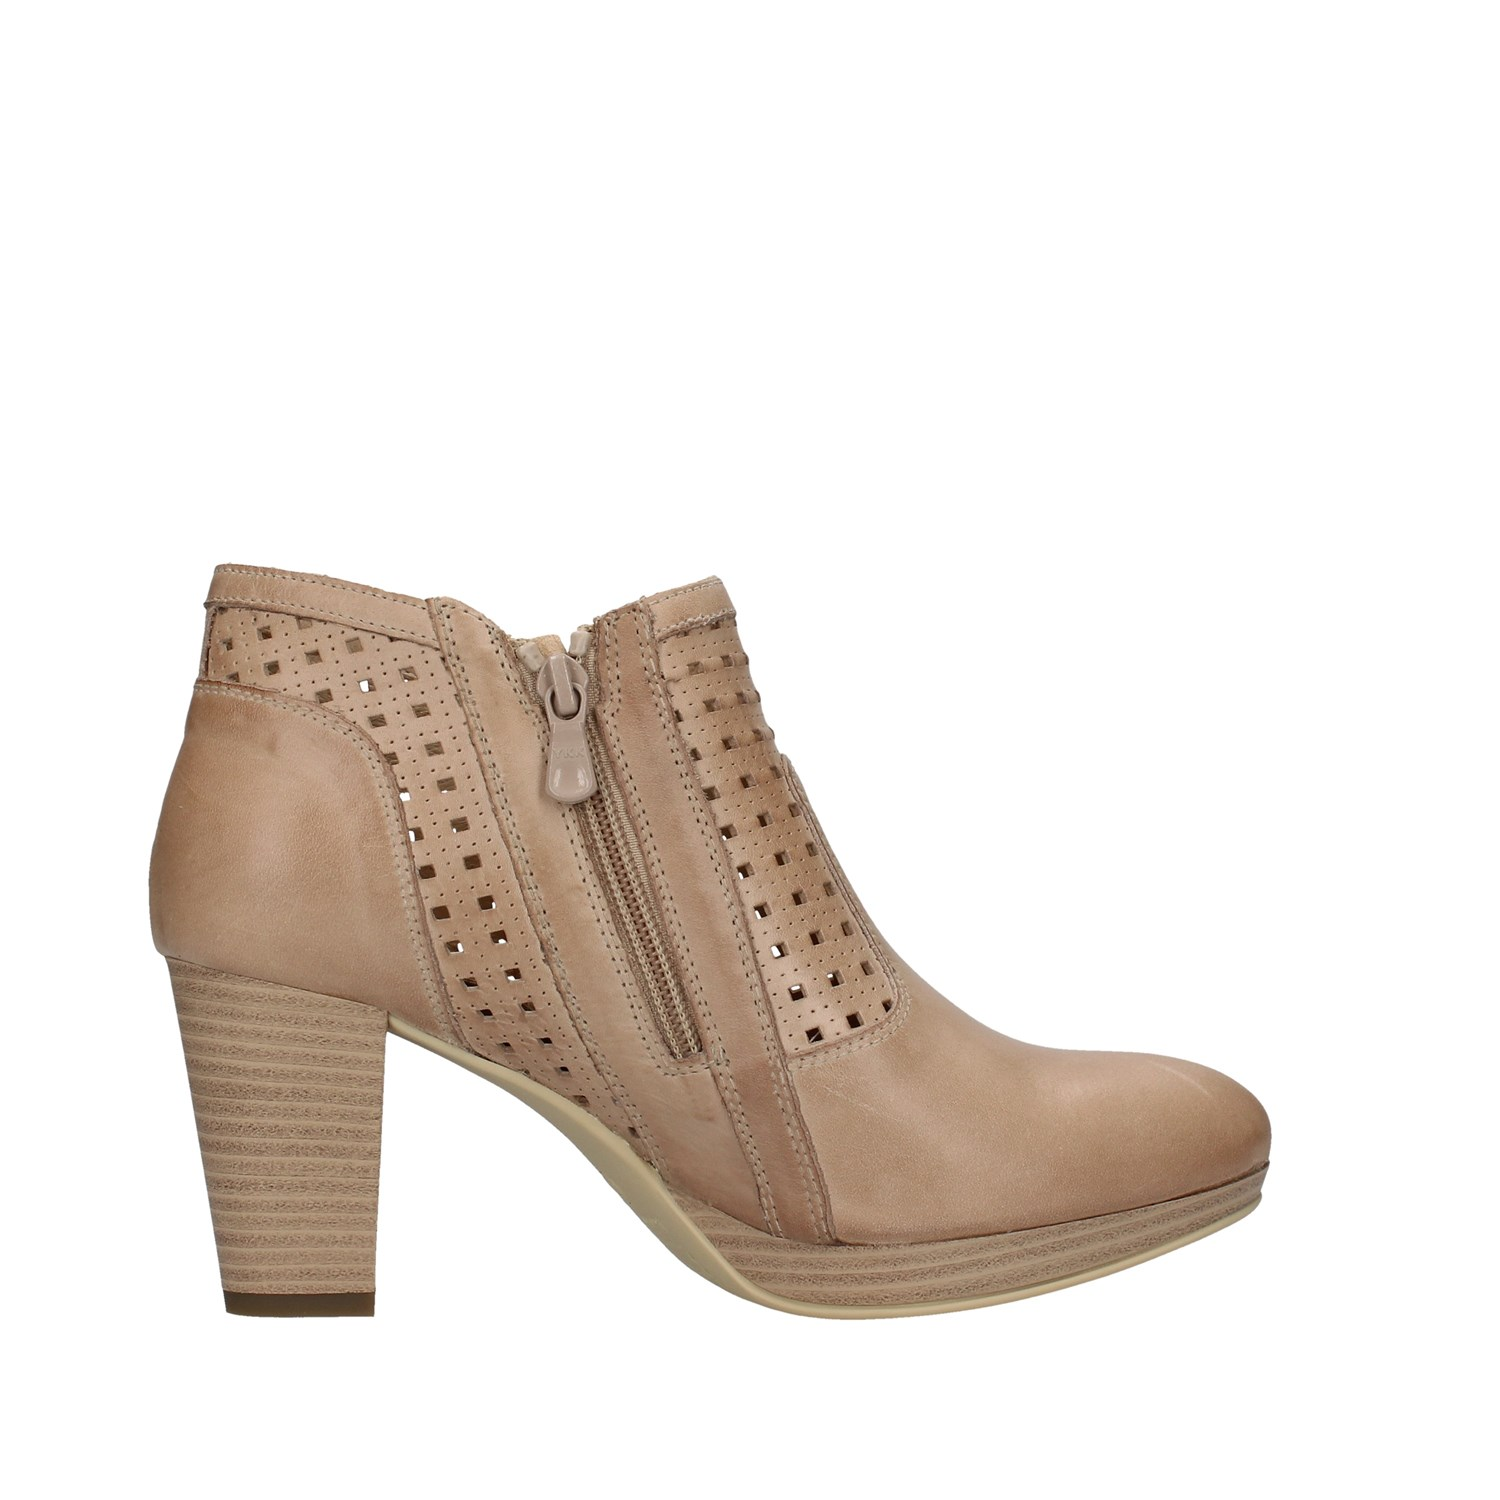 Nero Giardini Shoes Woman Ankle Boots BEIGE E010211D